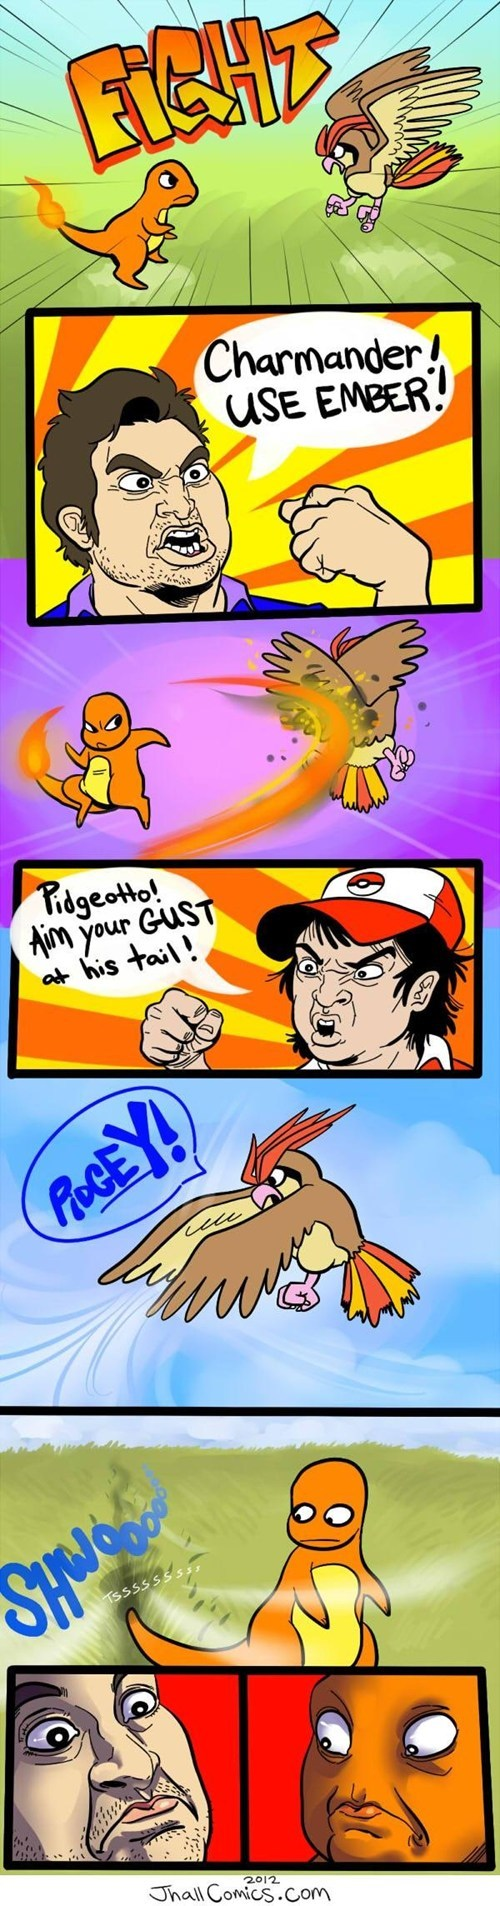 Battle,charmander,comic,pidgey